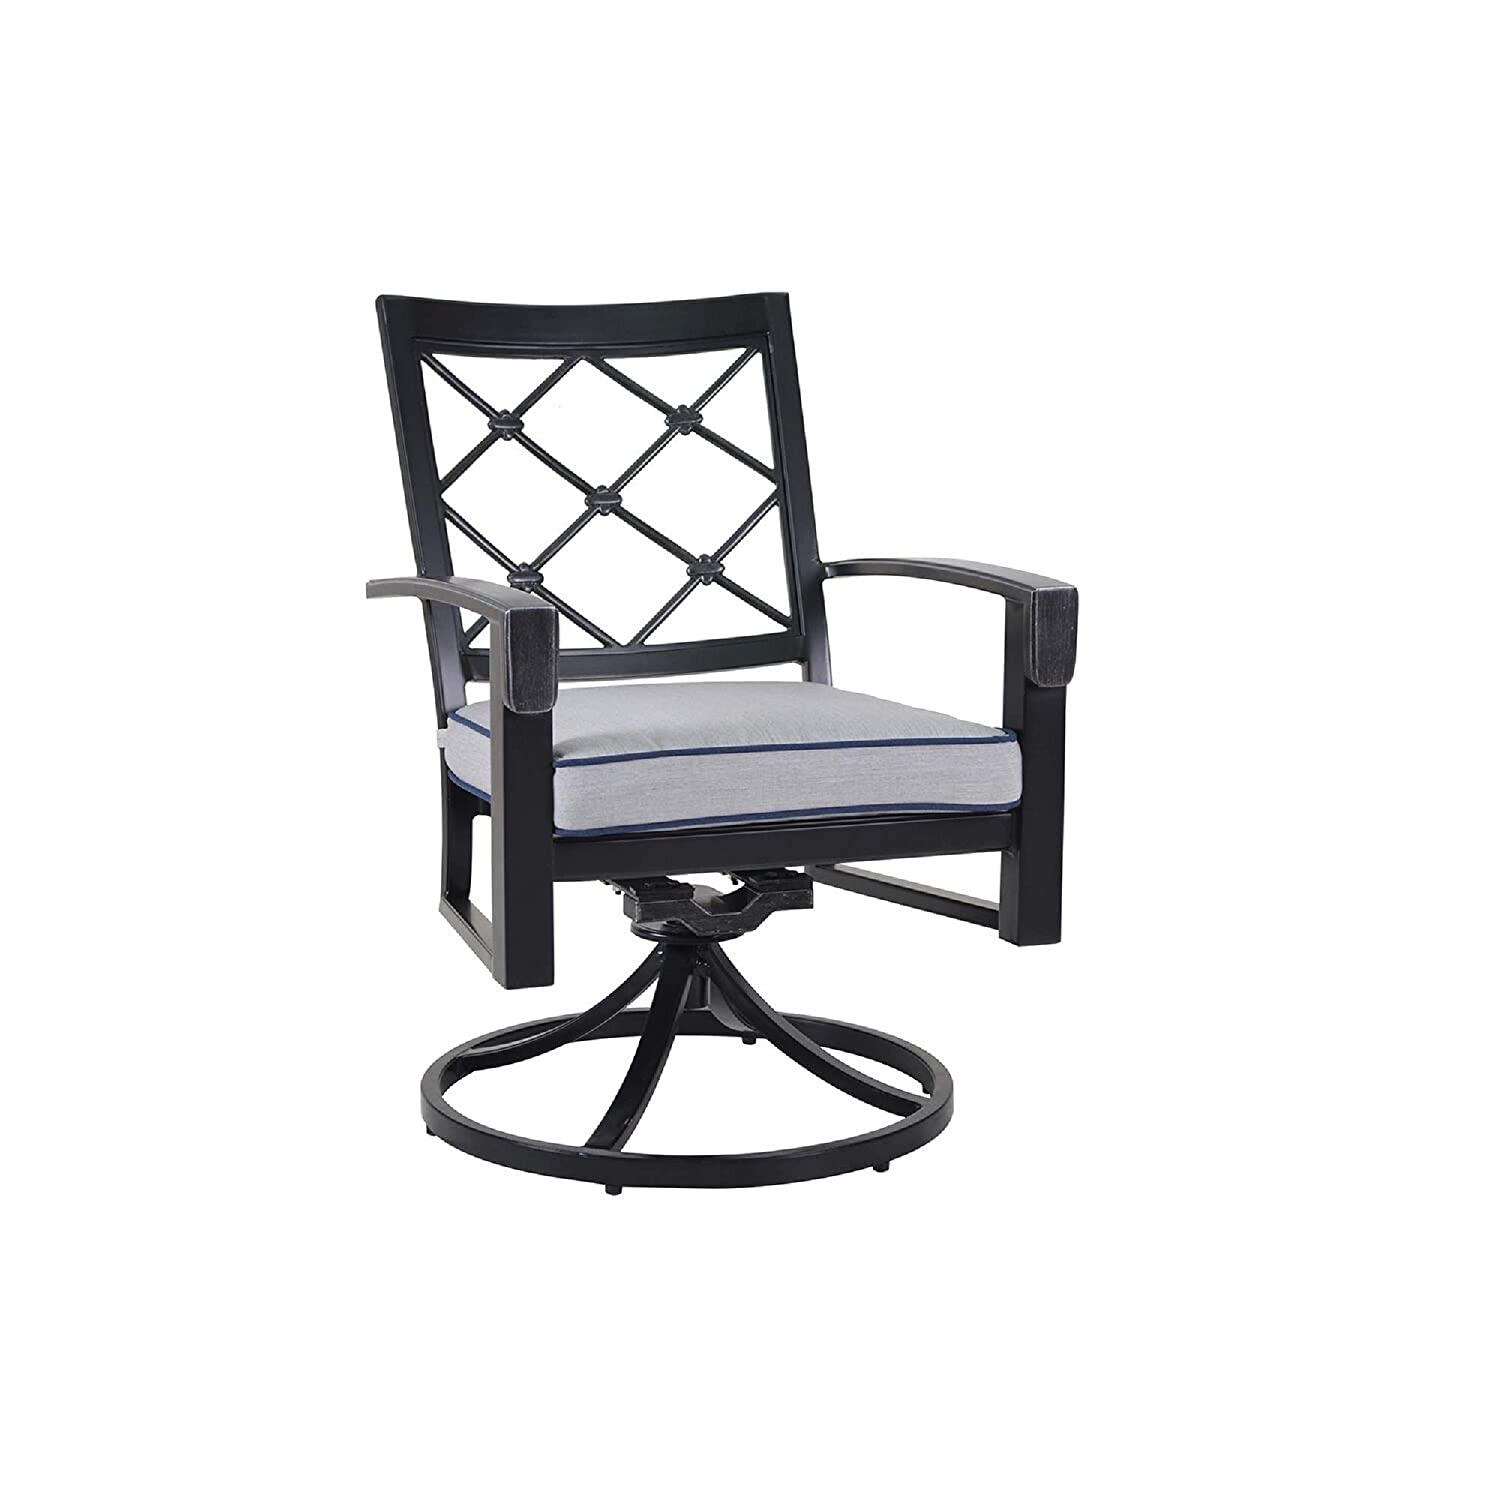 Prime Amazon Com 36 Outdoor Dining Swivel Rocking Chair Pack Of Unemploymentrelief Wooden Chair Designs For Living Room Unemploymentrelieforg